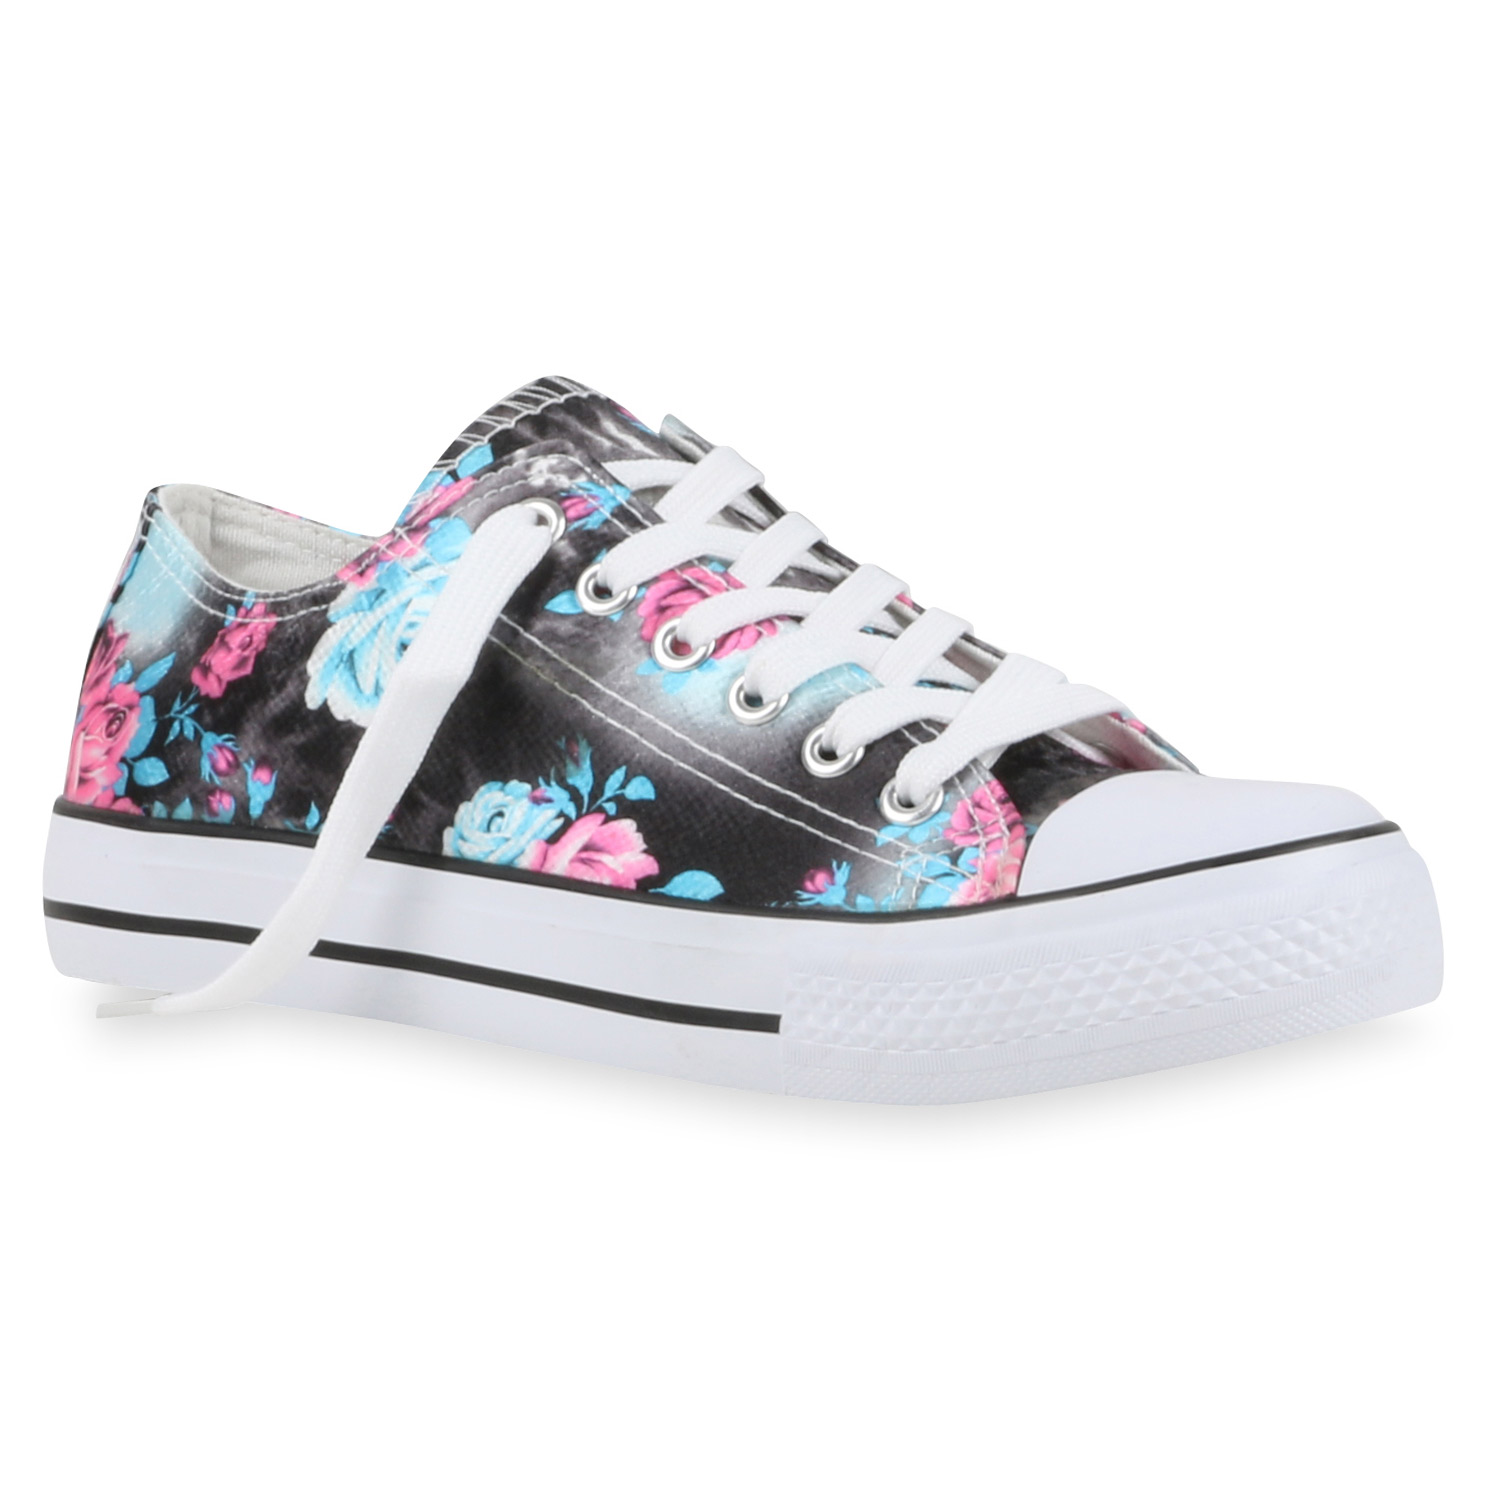 freizeit damen sneakers bunte prints canvas schuhe 811076 top ebay. Black Bedroom Furniture Sets. Home Design Ideas